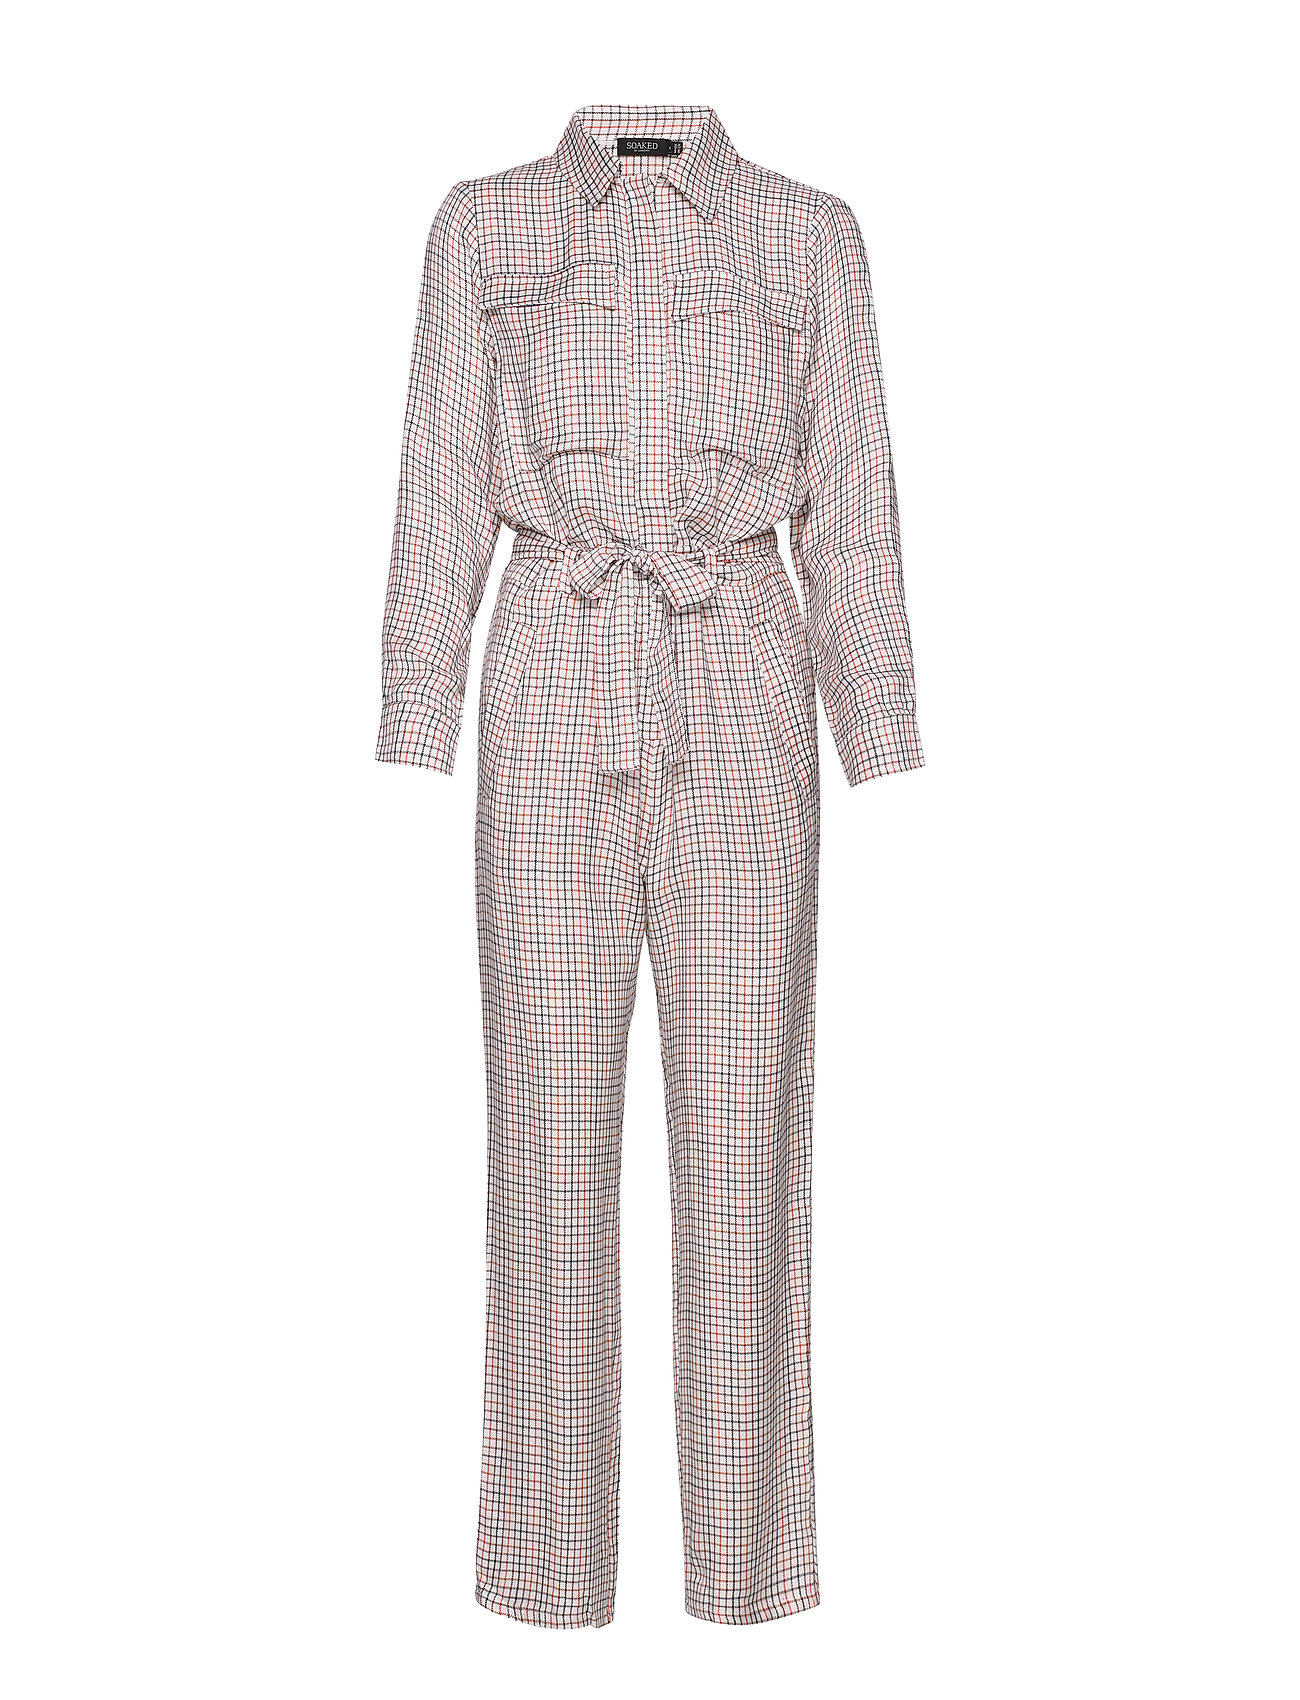 Soaked in Luxury SLKaia Jumpsuit - ANTIQUE WHITE CHECK PATTERN